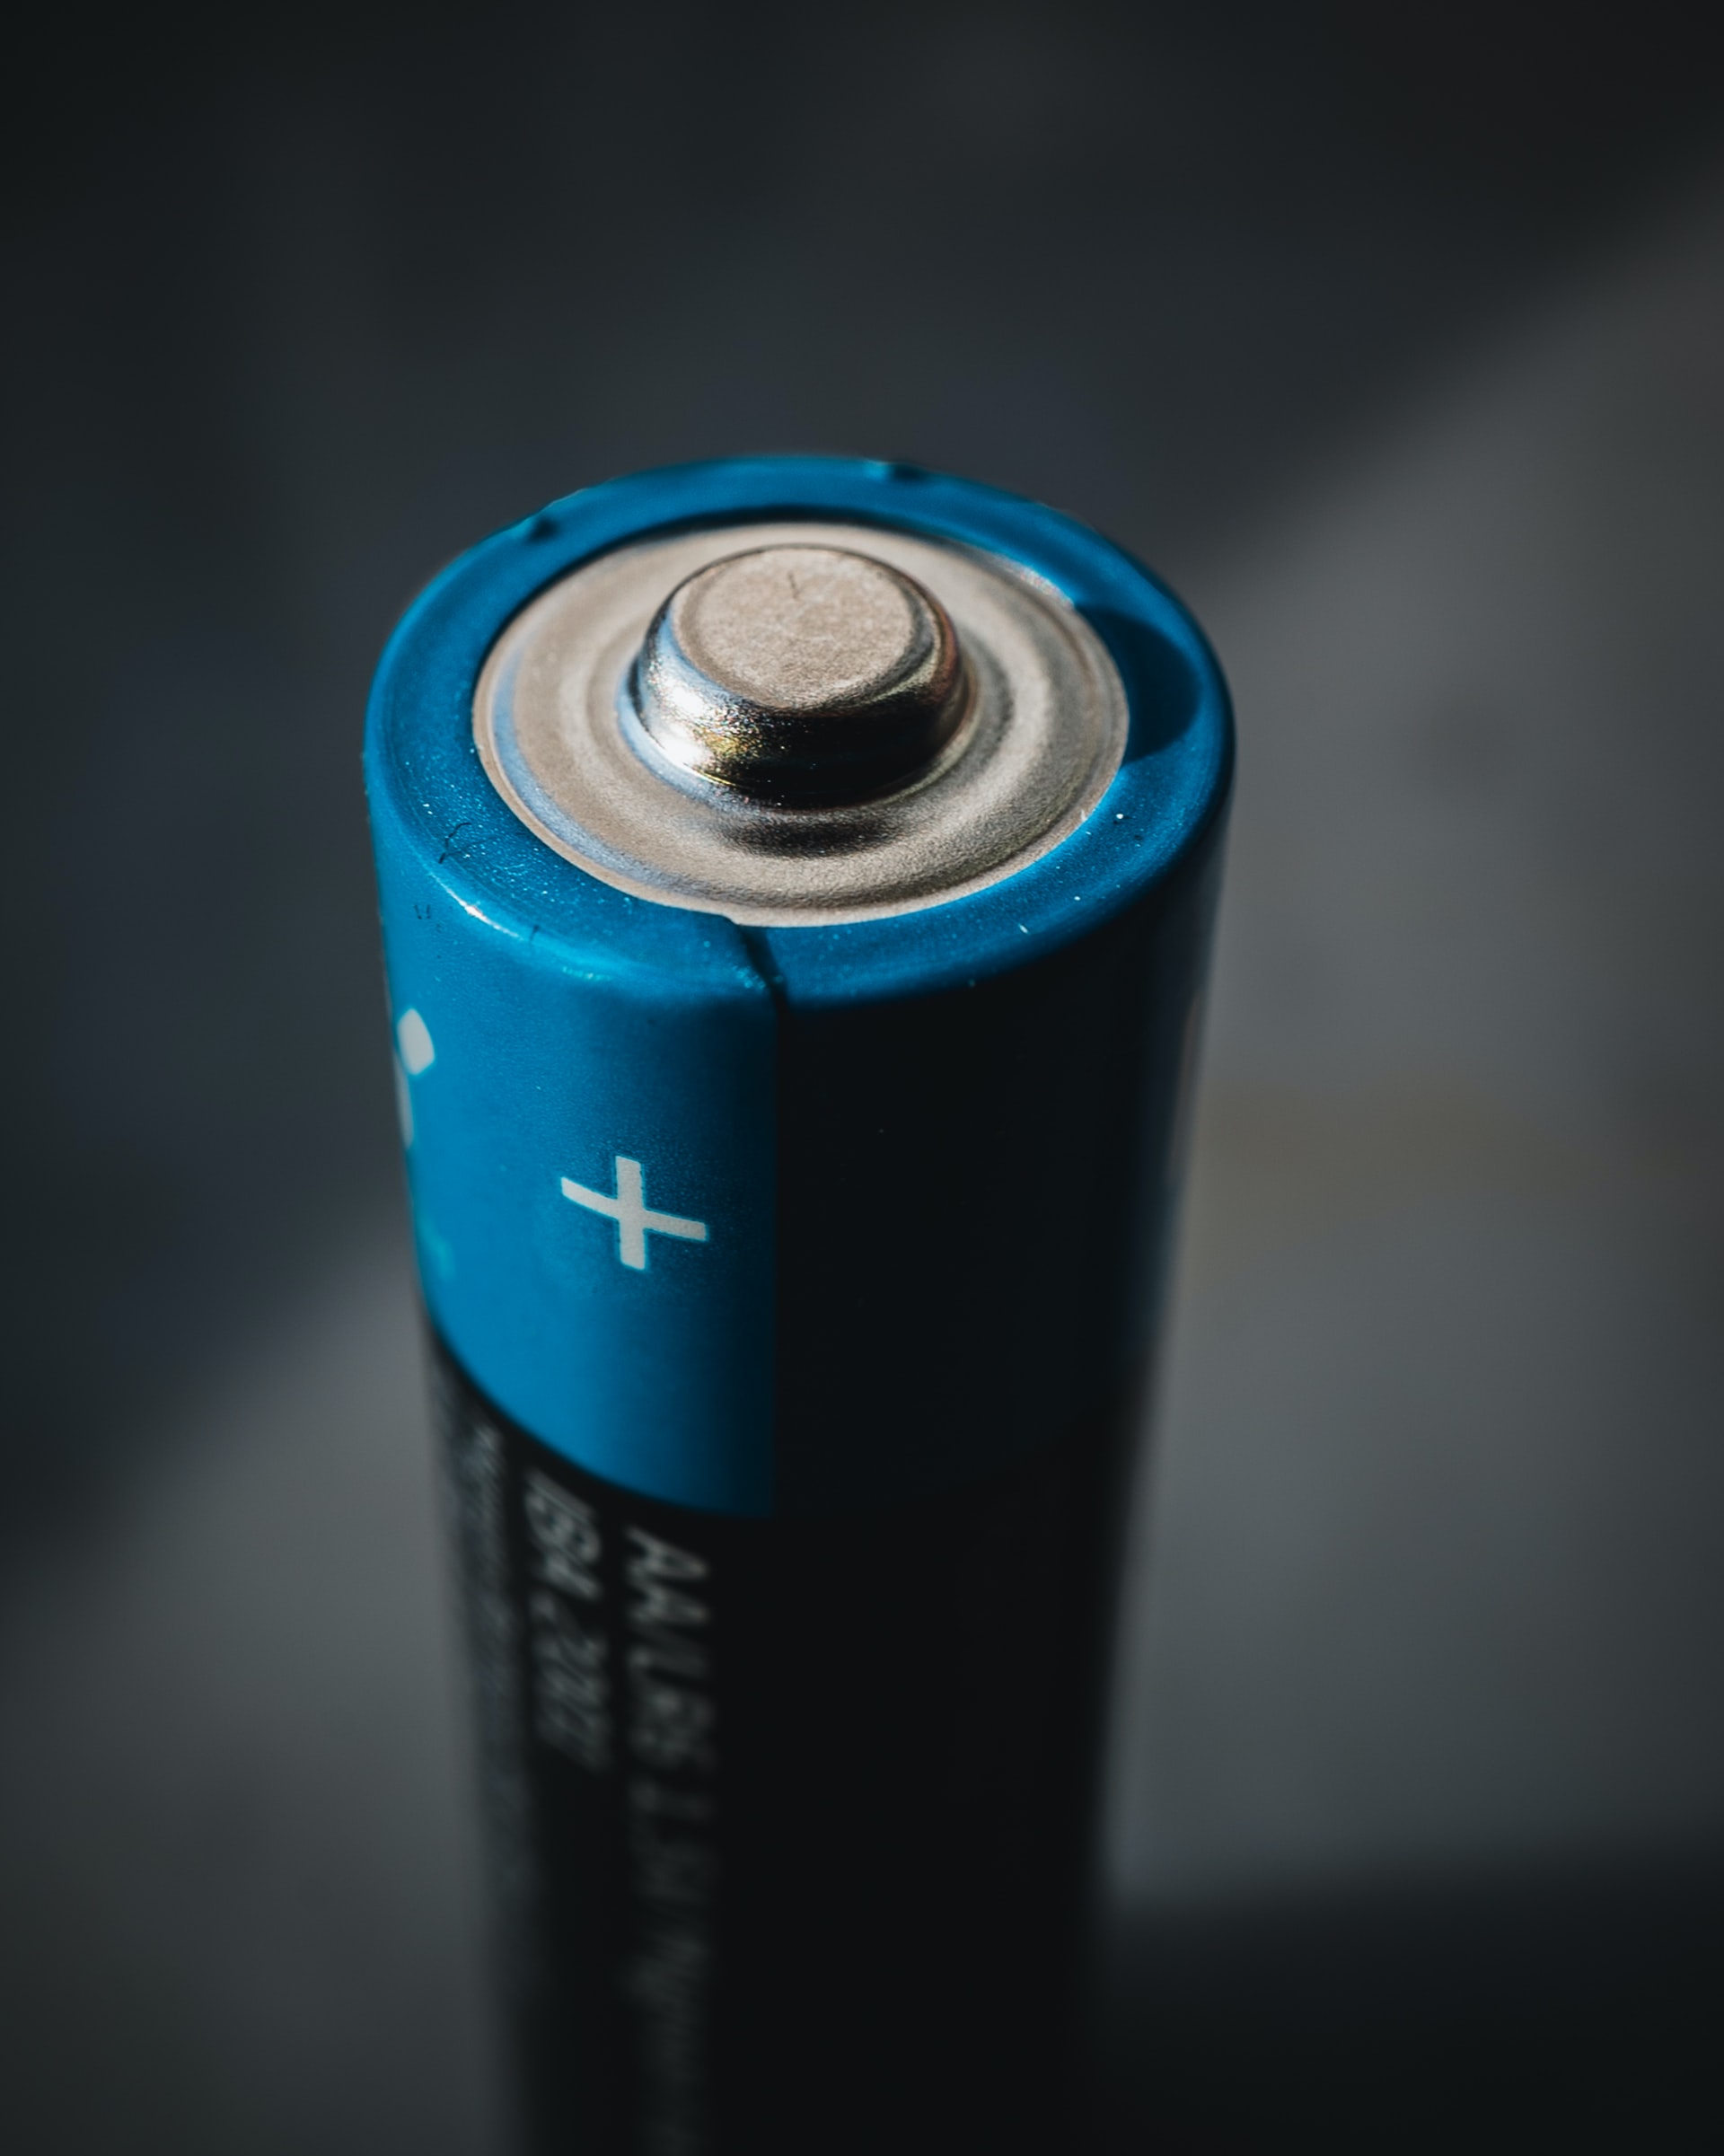 Battery Innovation Green Energy Article Image